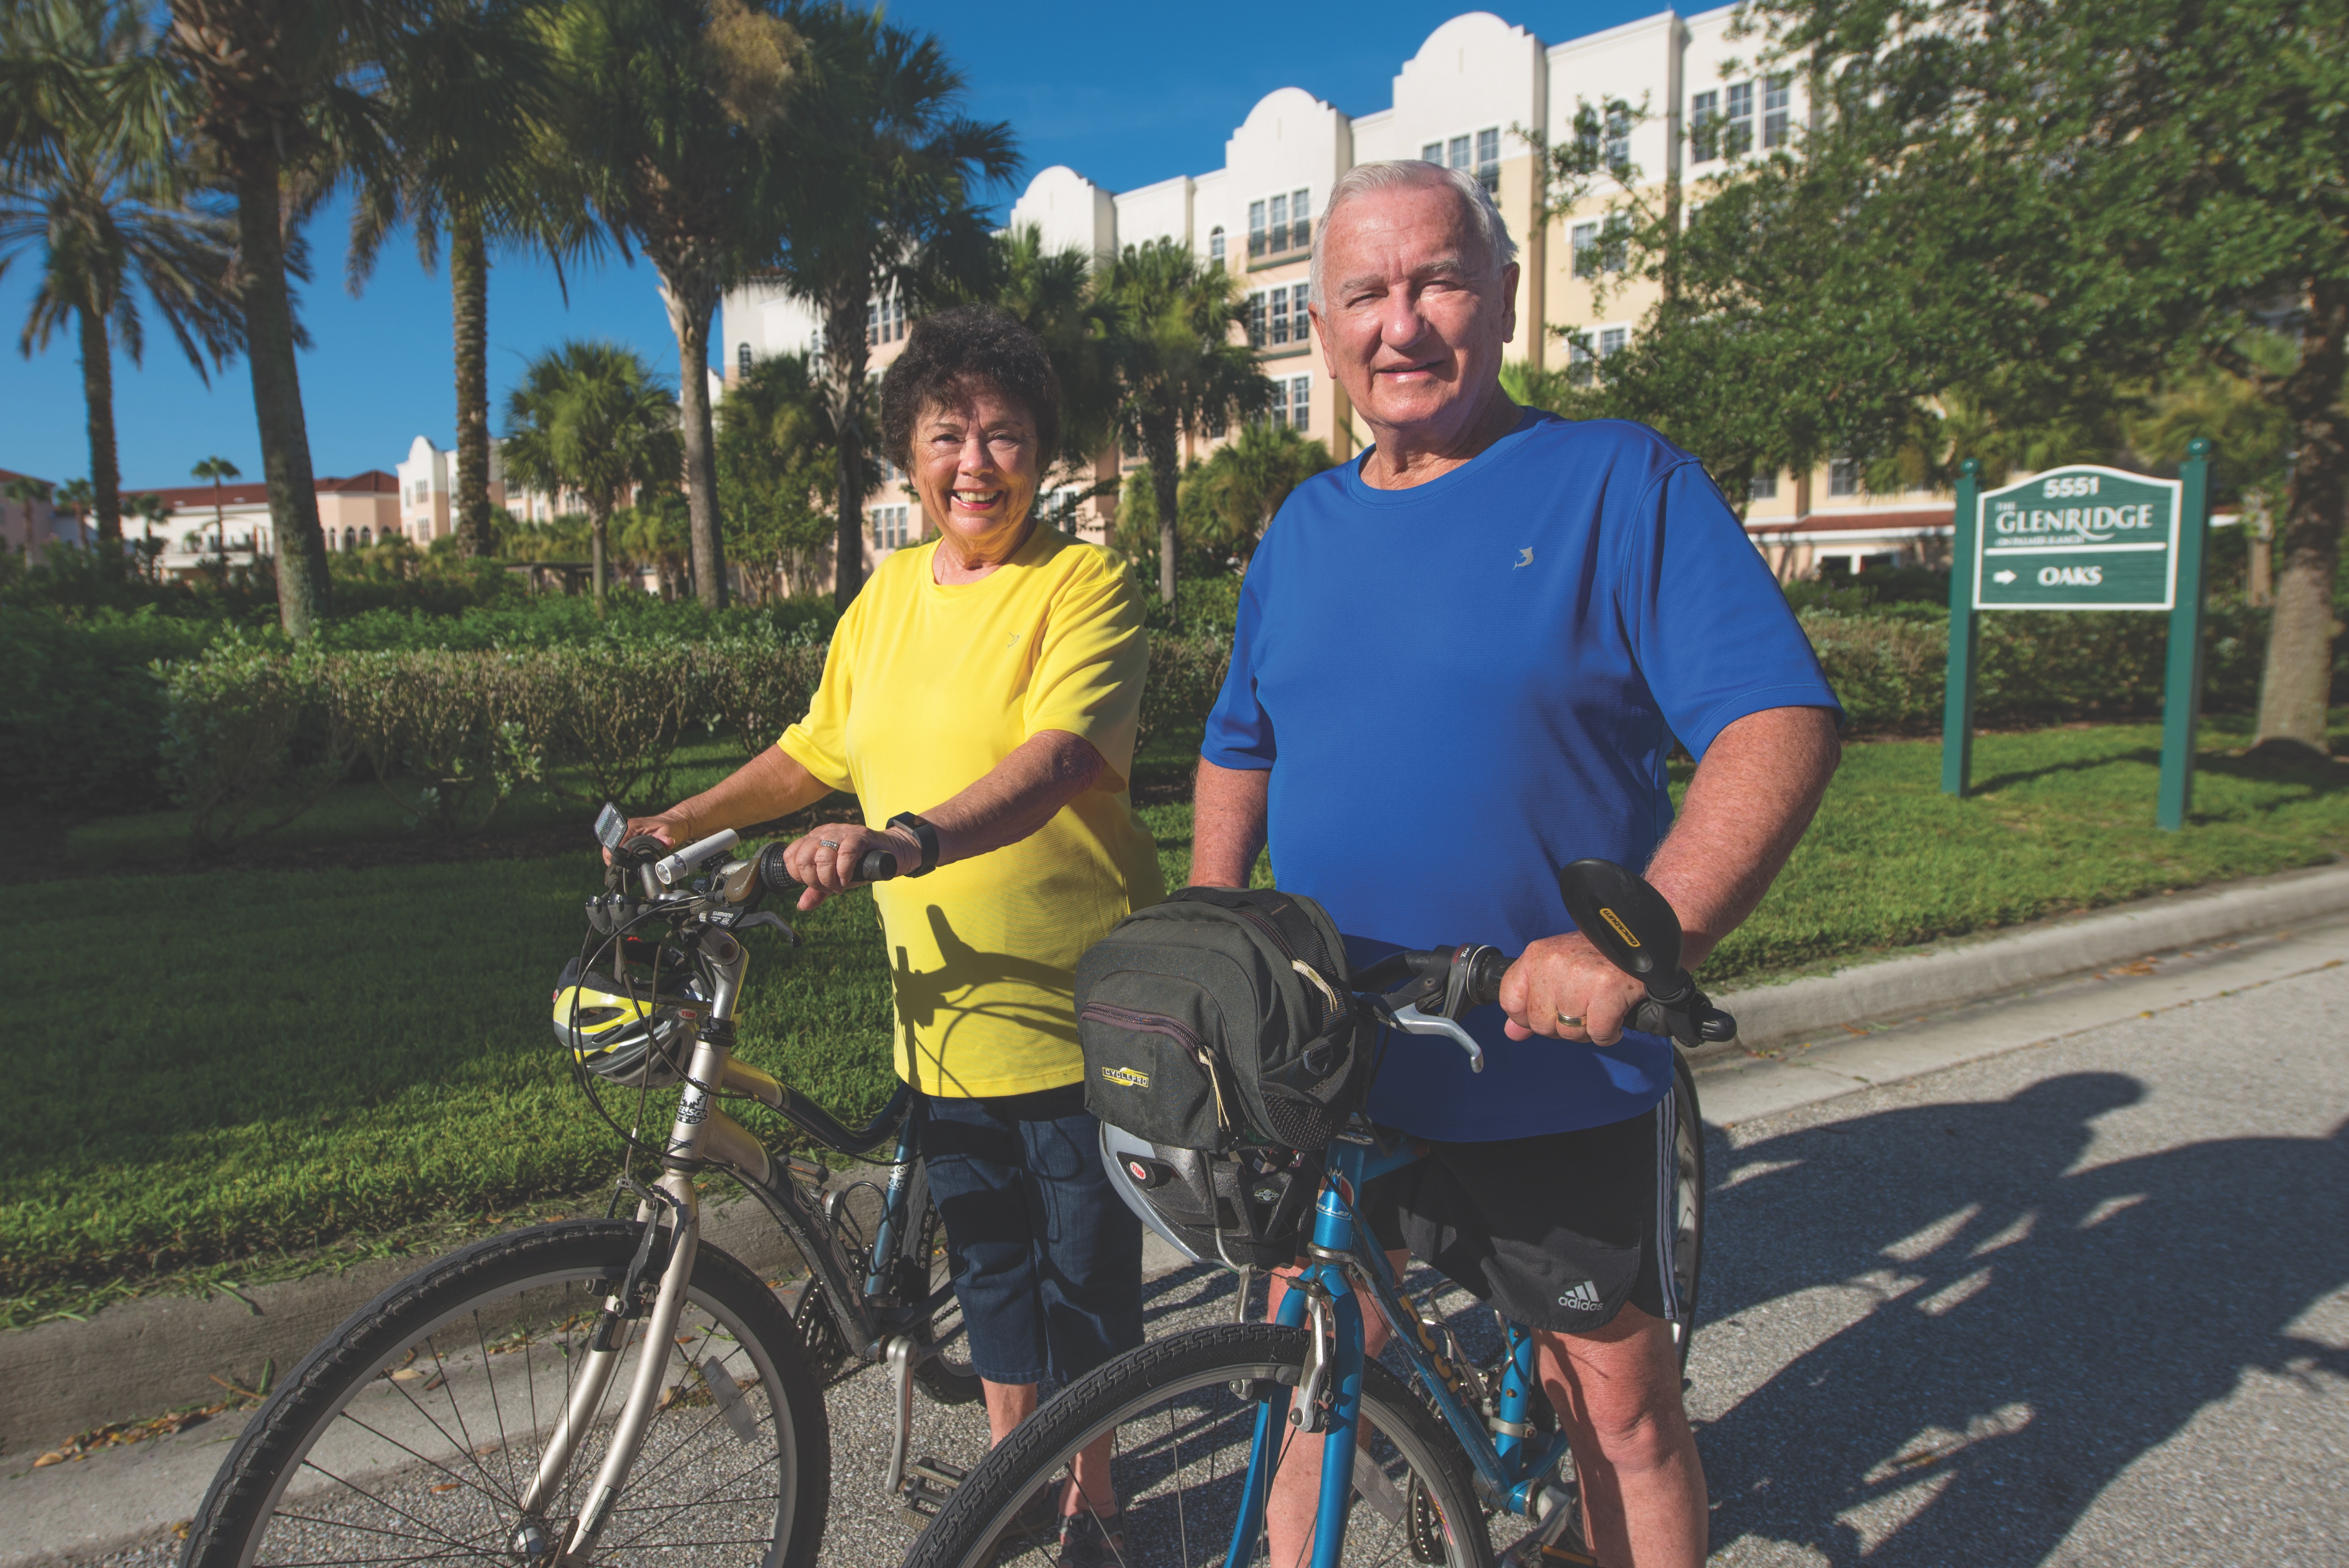 THE IMPORTANCE OF EXERCISE IN RETIREMENT